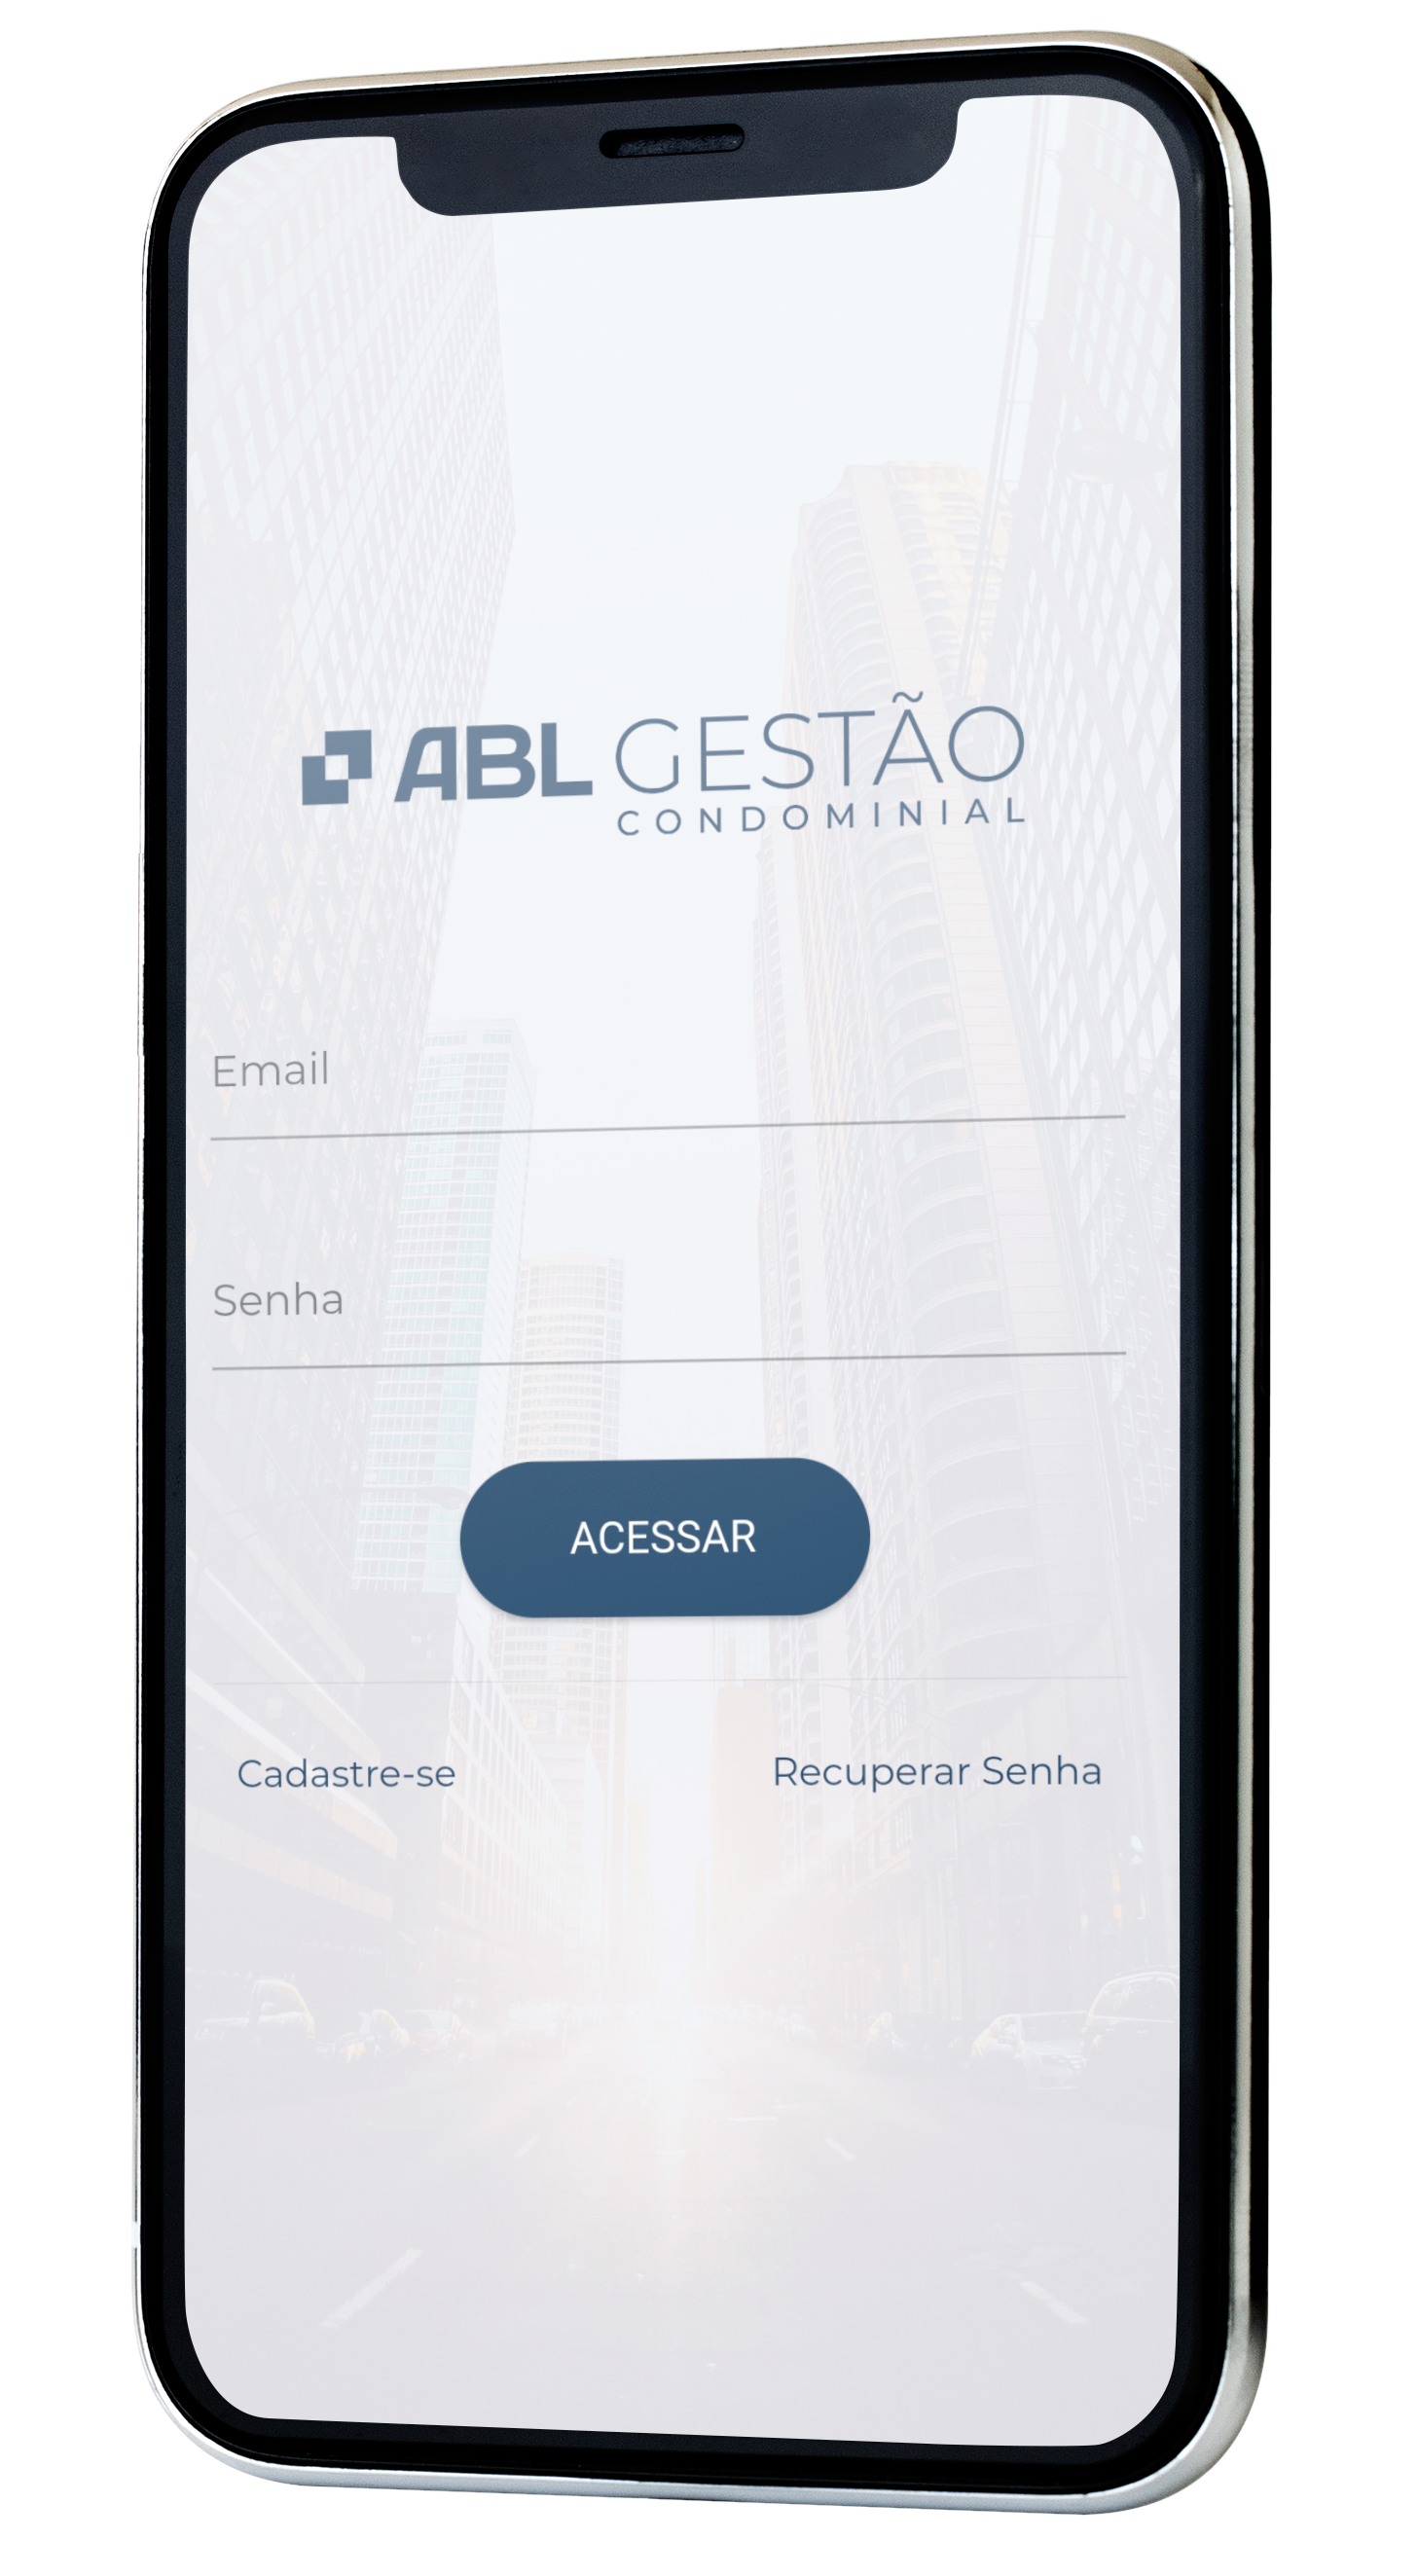 ABL Service Manager